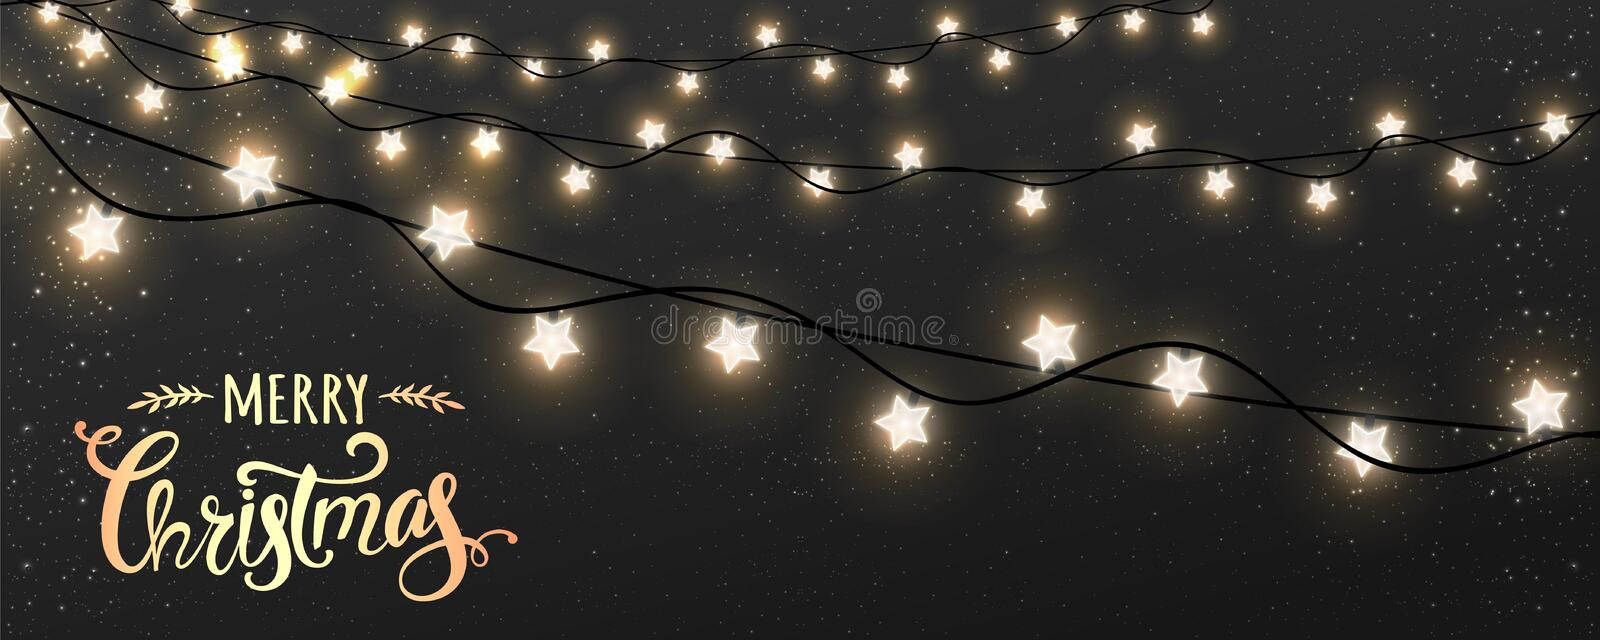 Merry Christmas Typographical on dark background with Xmas decorations glowing white garlands, light, stars. Christmas theme. Vector Illustration stock illustration